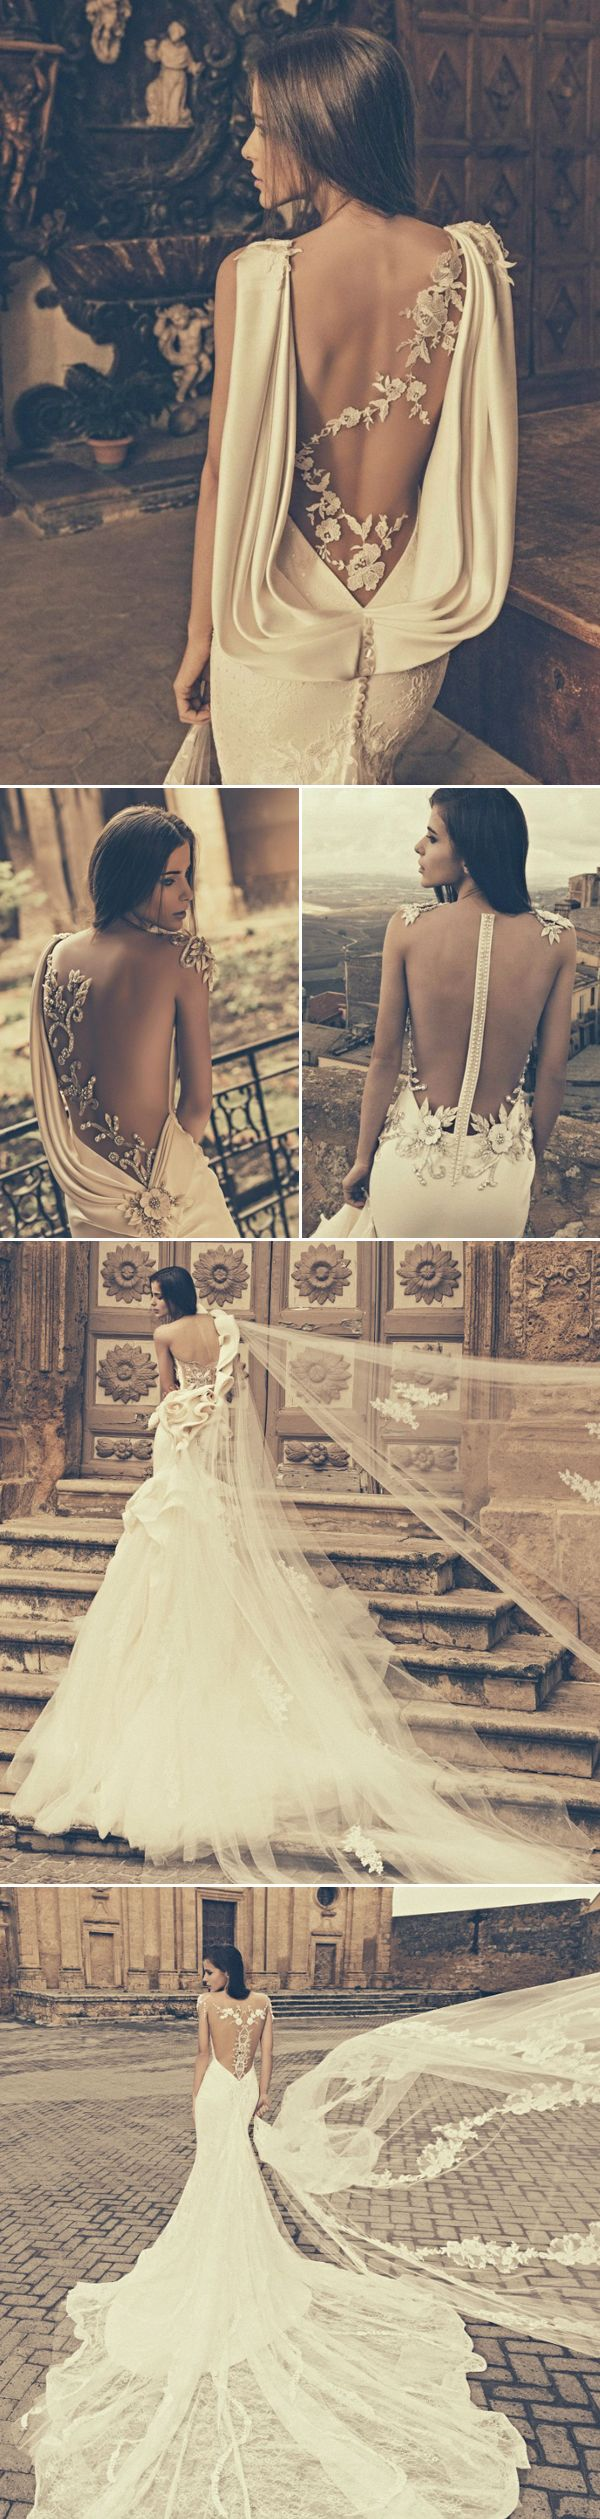 27 Wedding Dresses with Stunning Back Details from 2015 Bridal Market - Julia Kontogruni.